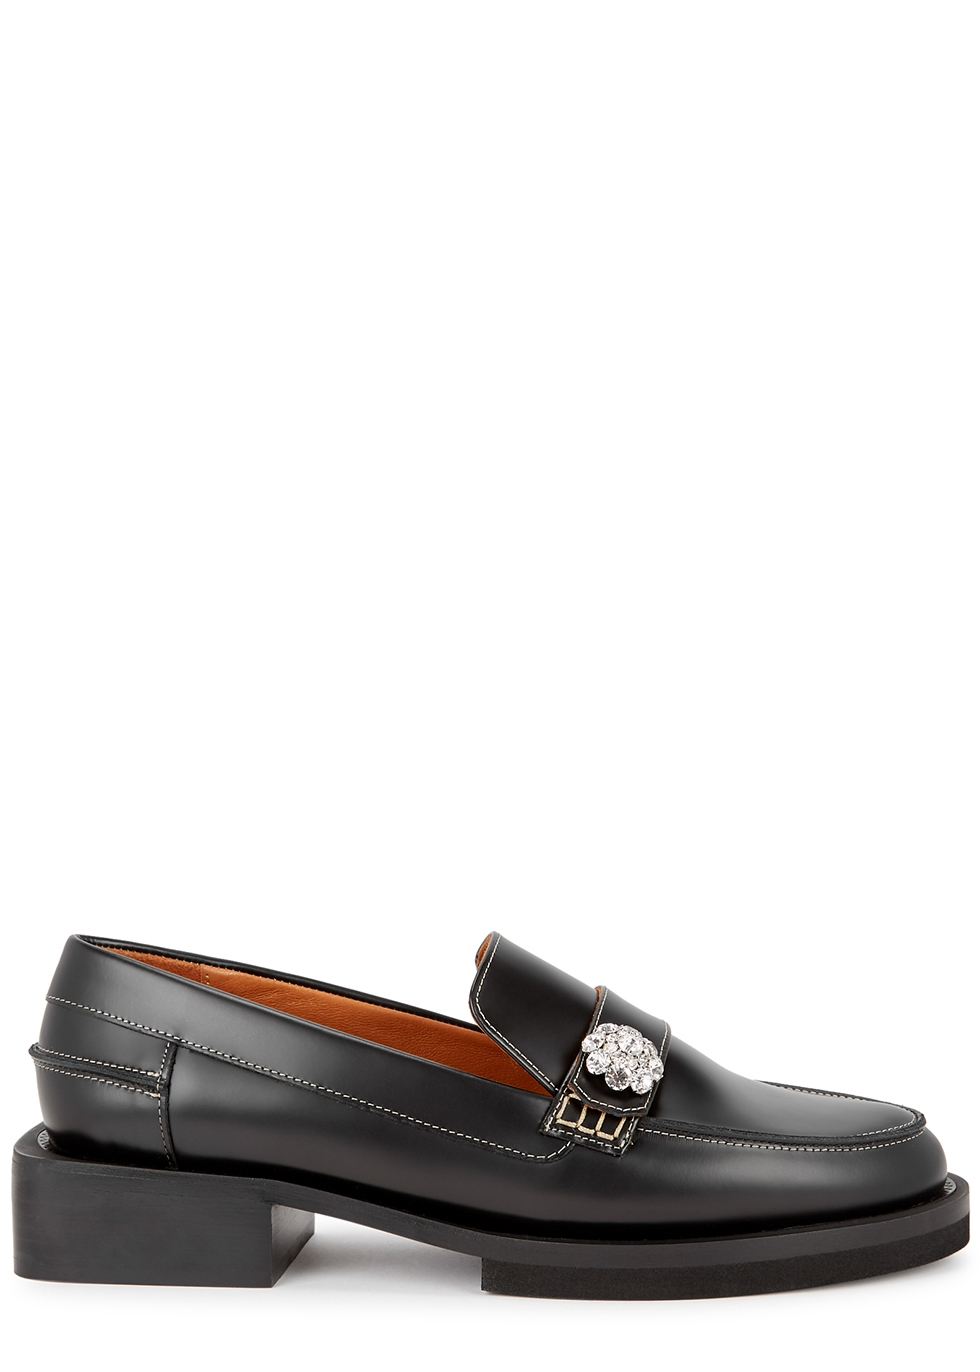 40 black leather loafers